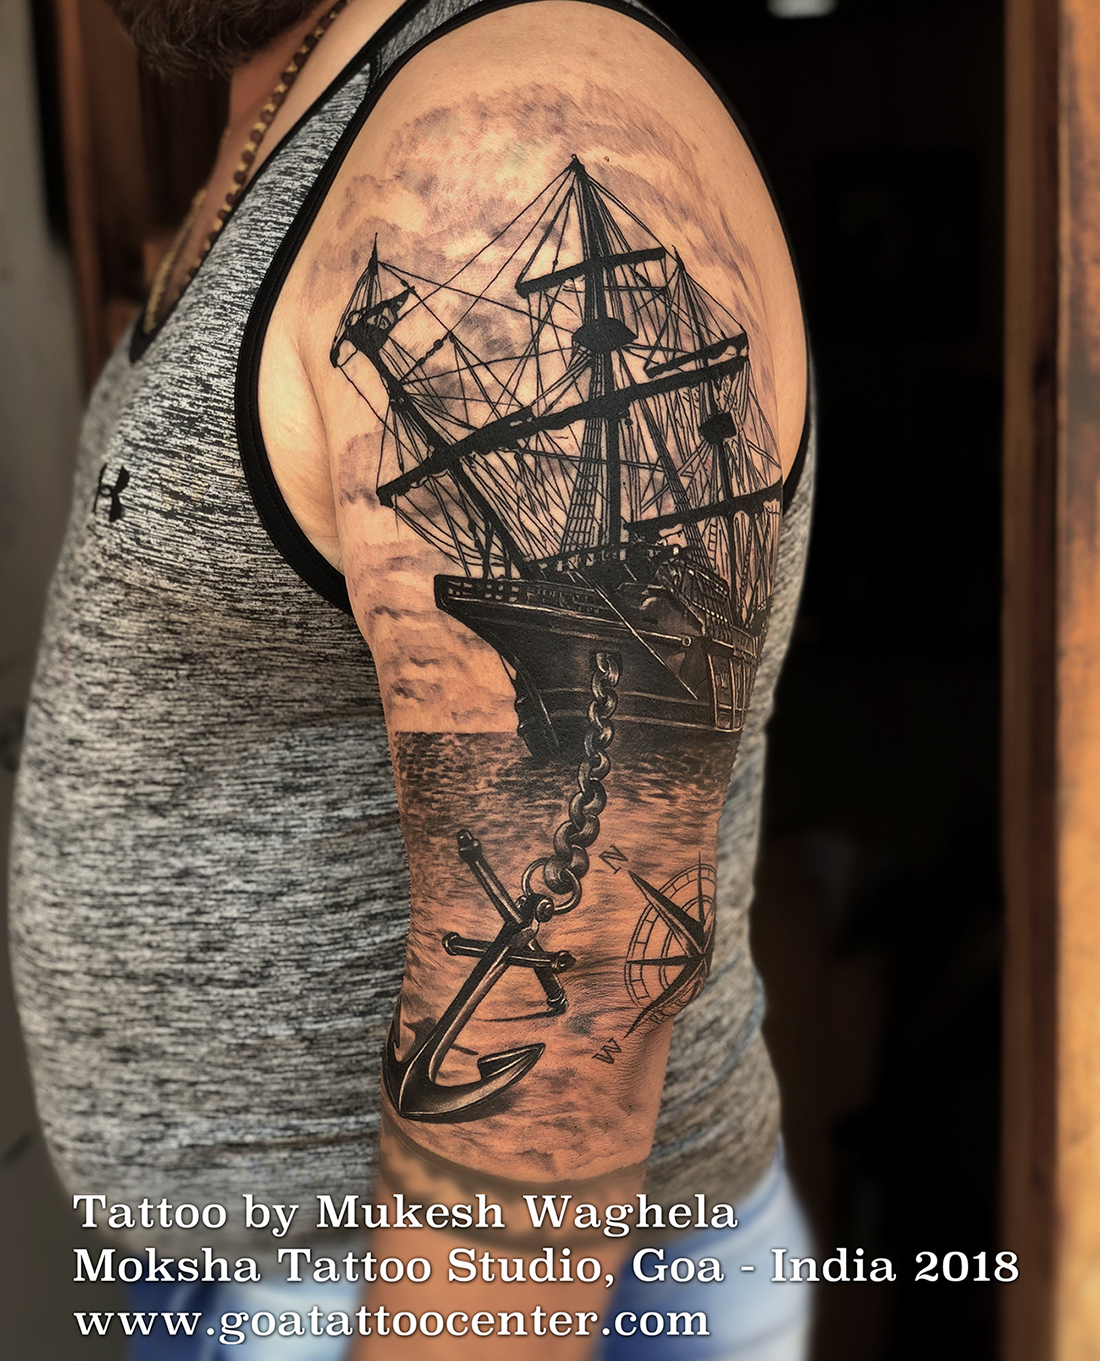 Travelling Tattoo Done By Mukesh Waghela At Moksha Tattoo Ideas And Designs